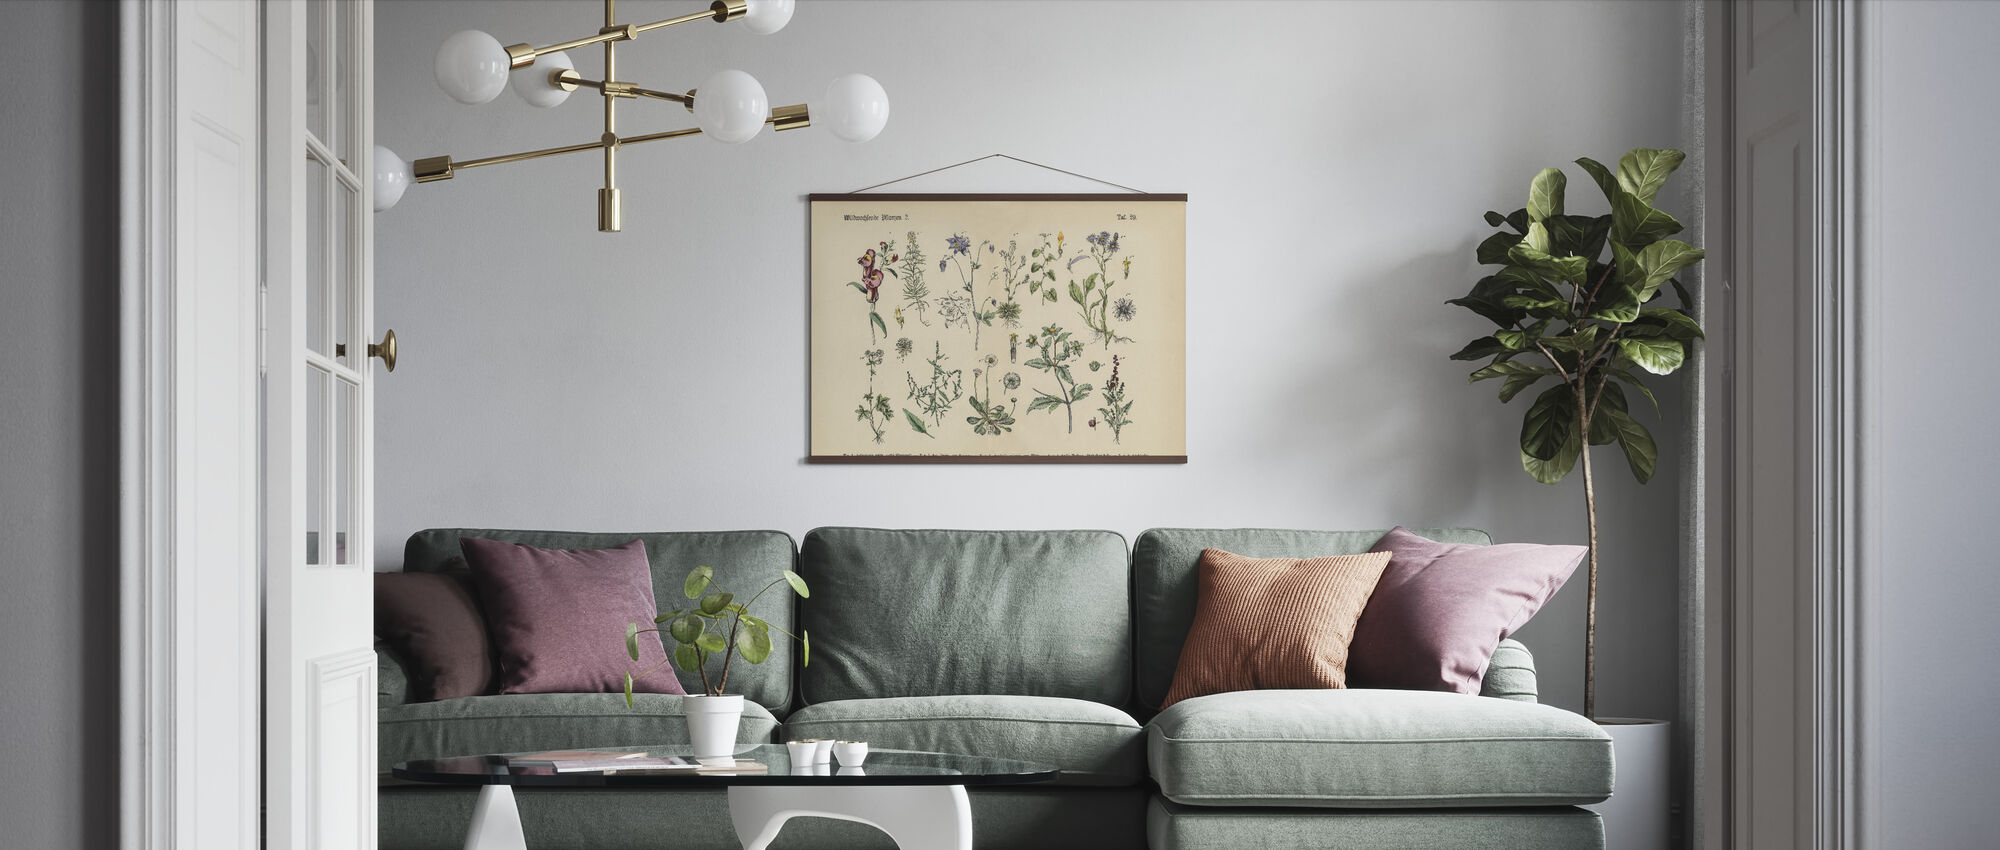 Wildflower and Medicinal Herbal Plants - Poster - Living Room